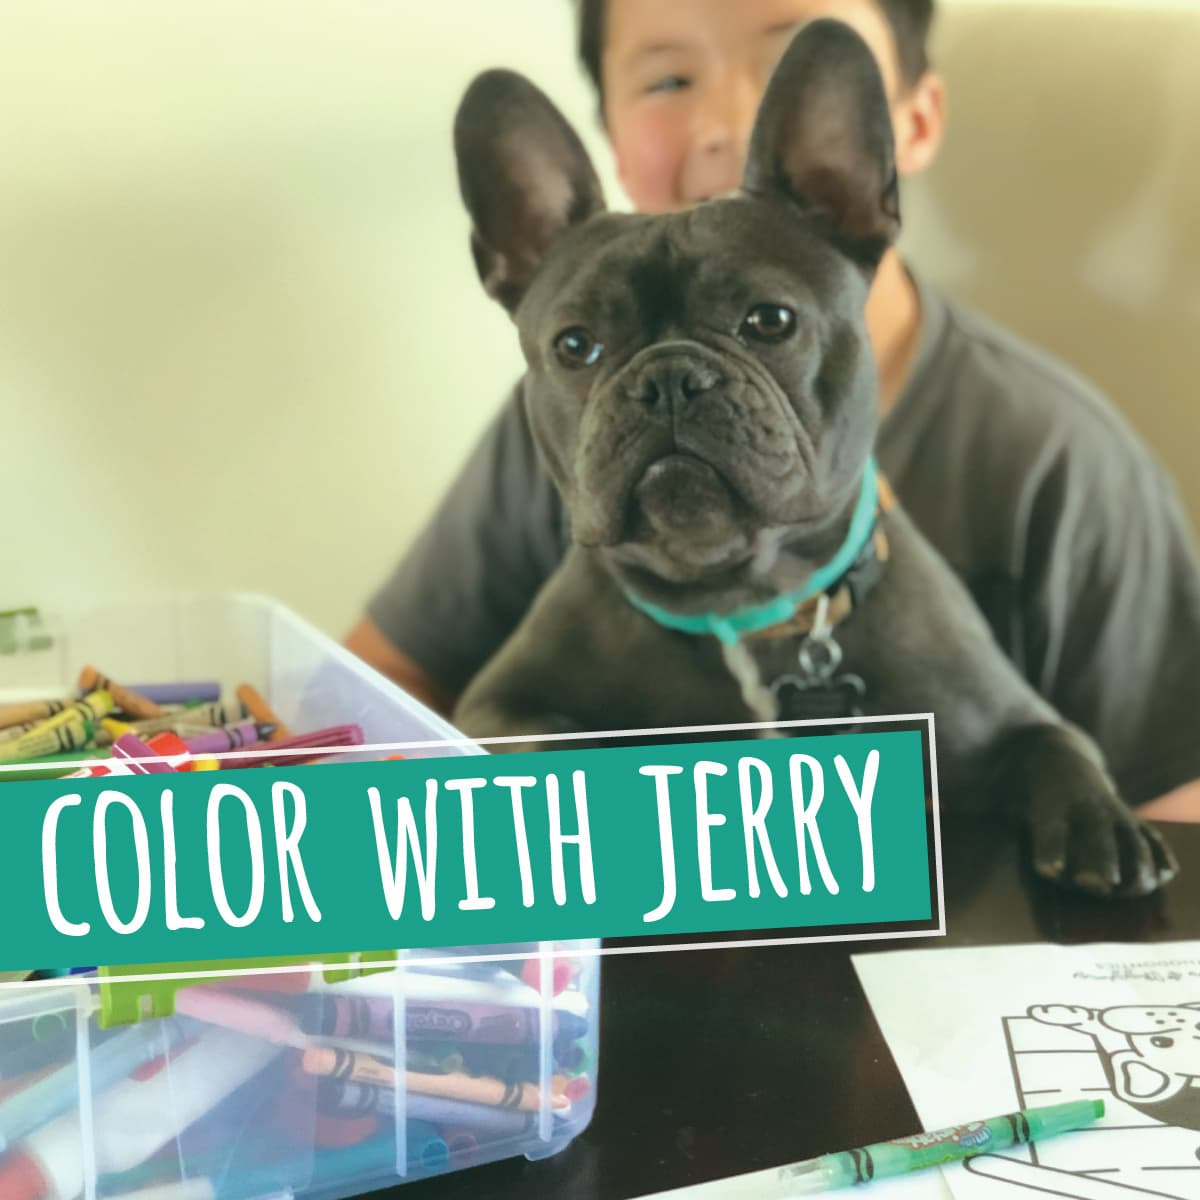 colorwithjerry pic - Color With Jerry!